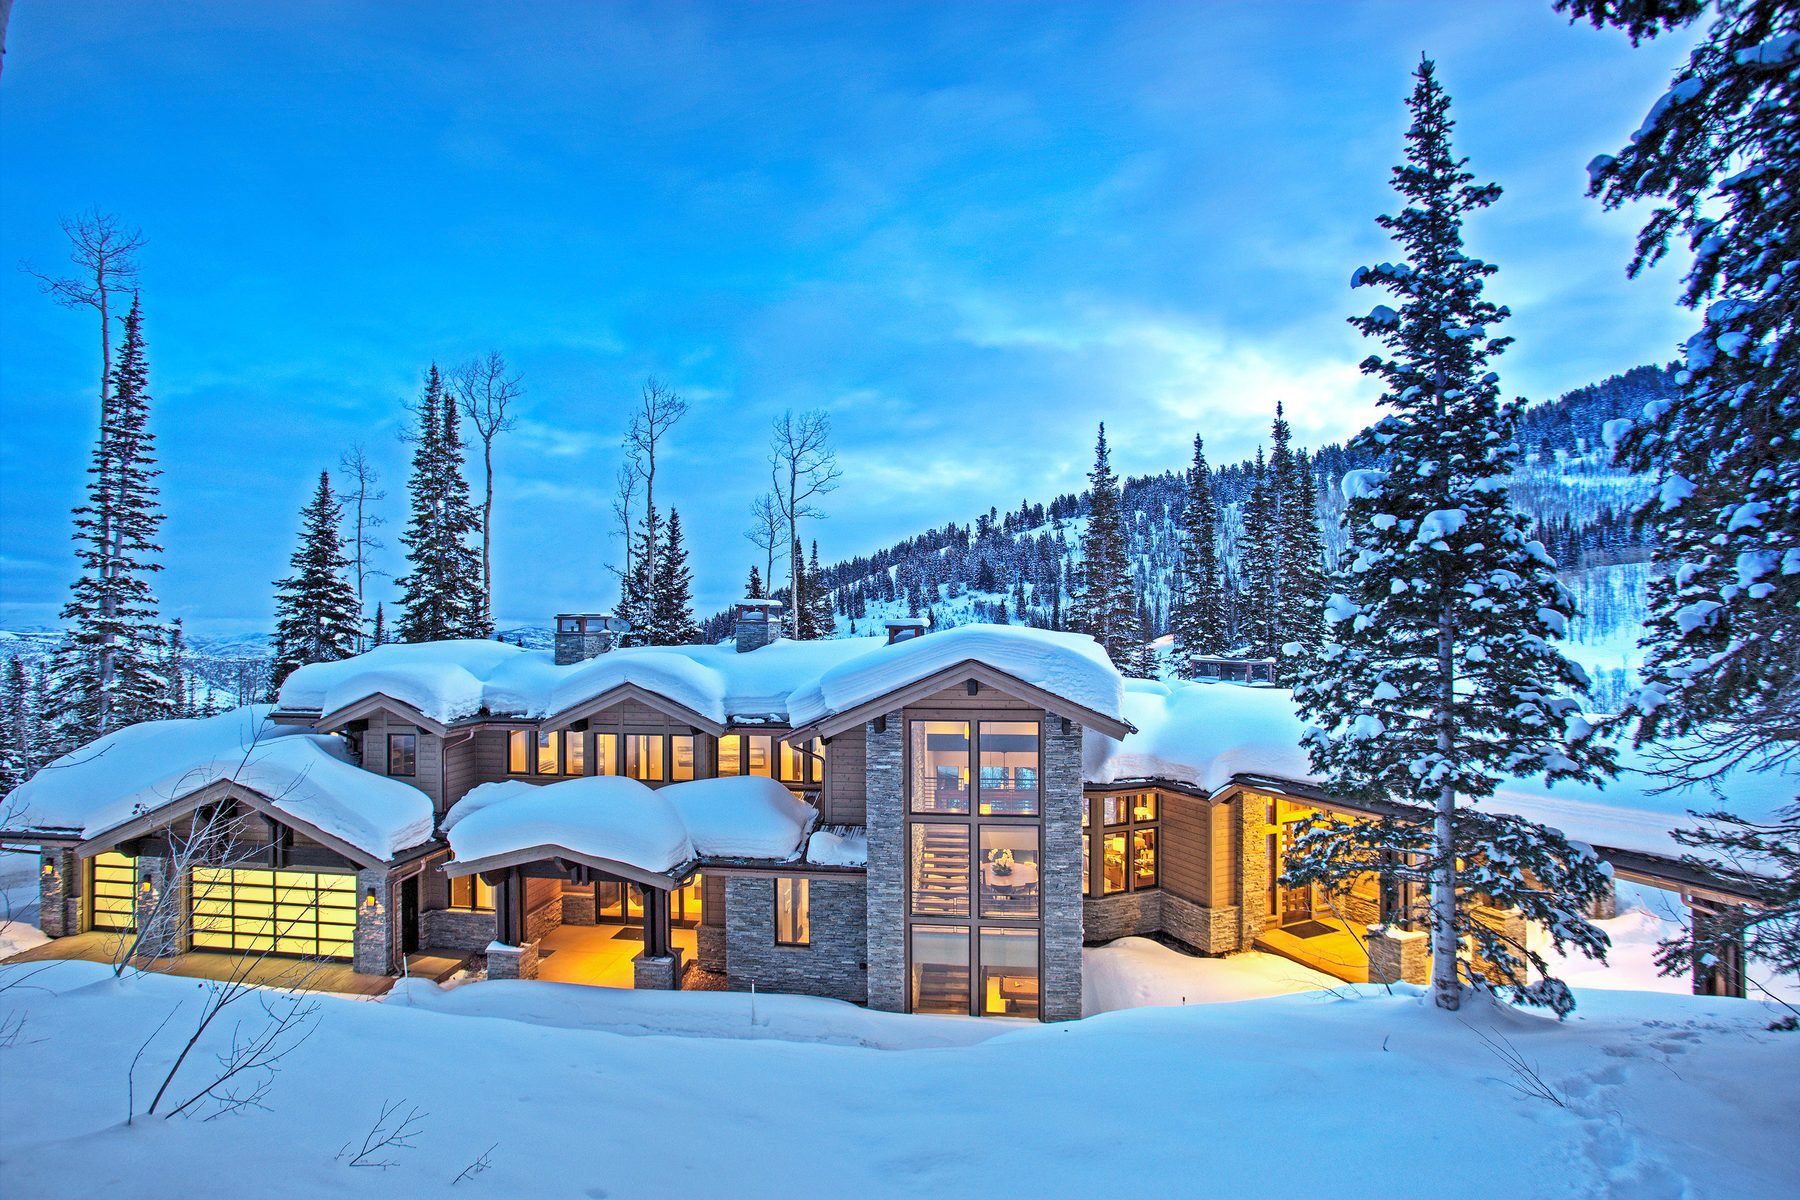 一戸建て のために 売買 アット Mountain Contemporary Masterpiece in the Colony 167 White Pine Canyon Rd Park City, ユタ, 84060 アメリカ合衆国